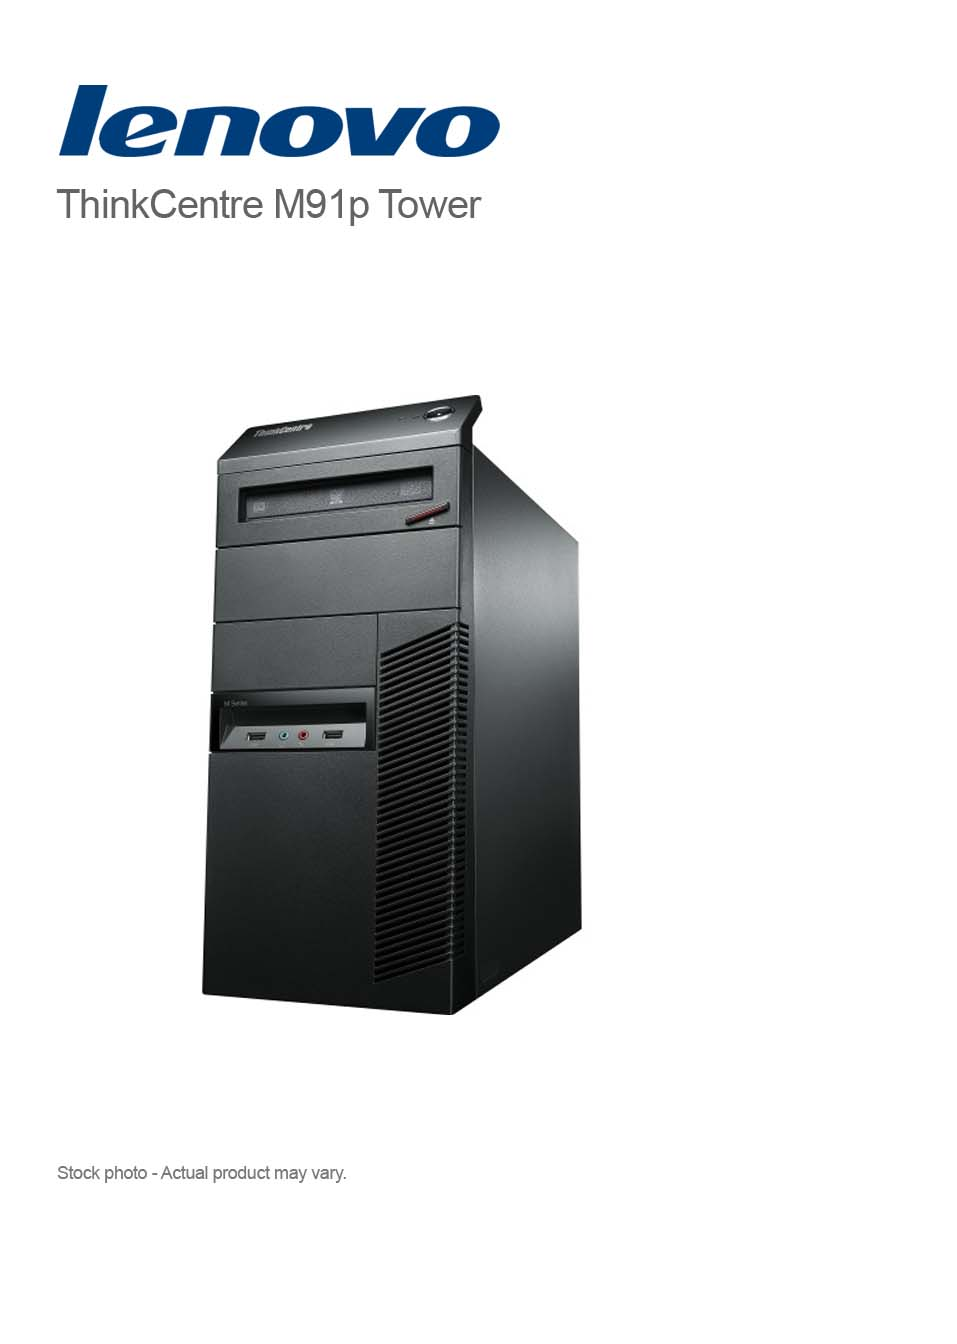 Drivers for ibm thinkcentre MT-M for windows xp - Lenovo Community